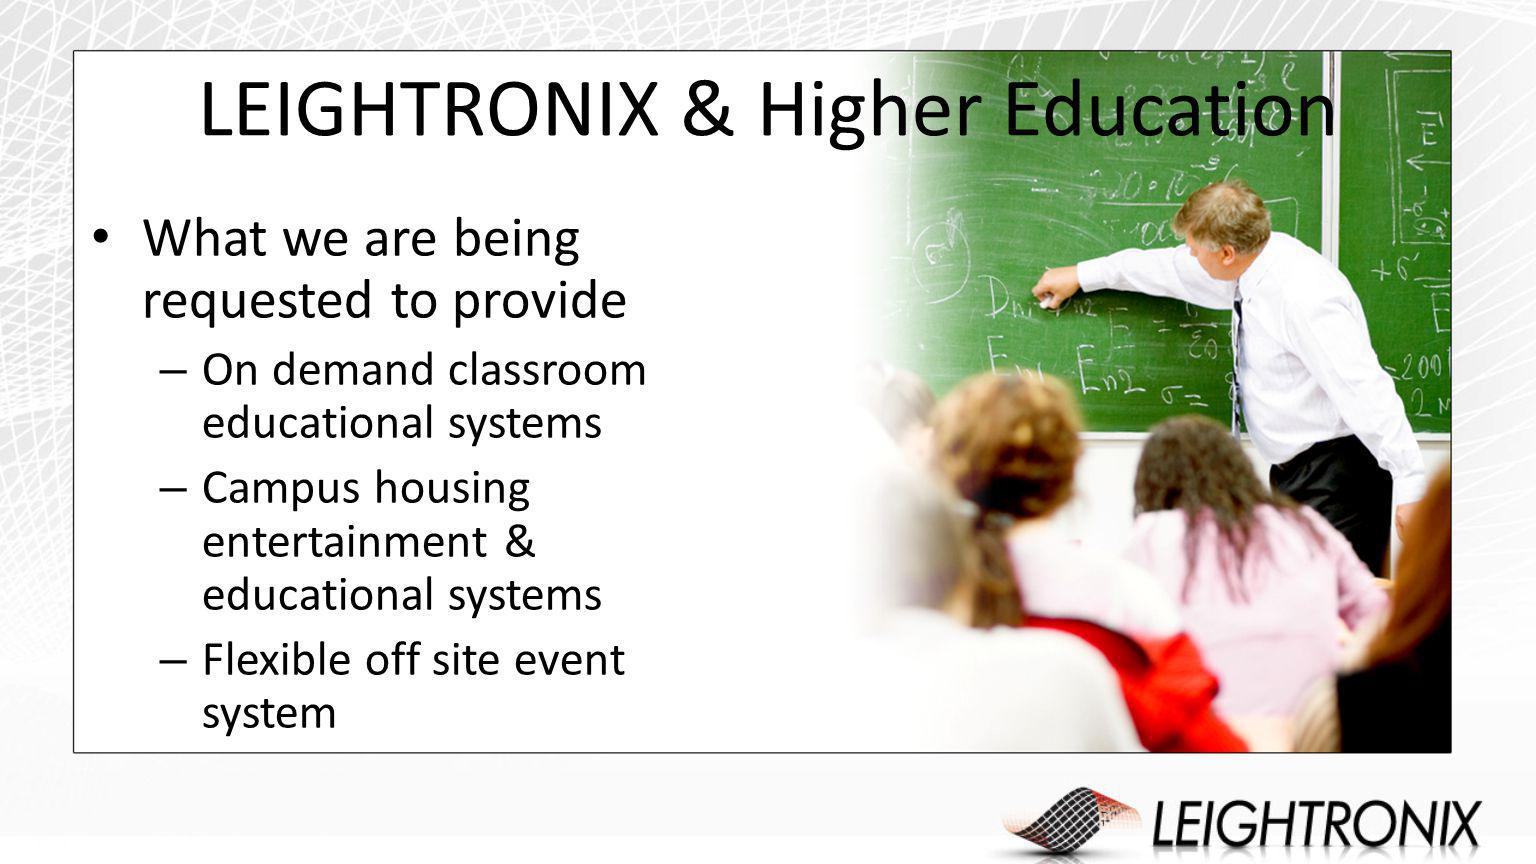 LEIGHTRONIX & Higher Education What we are being requested to provide – On demand classroom educational systems – Campus housing entertainment & educational systems – Flexible off site event system